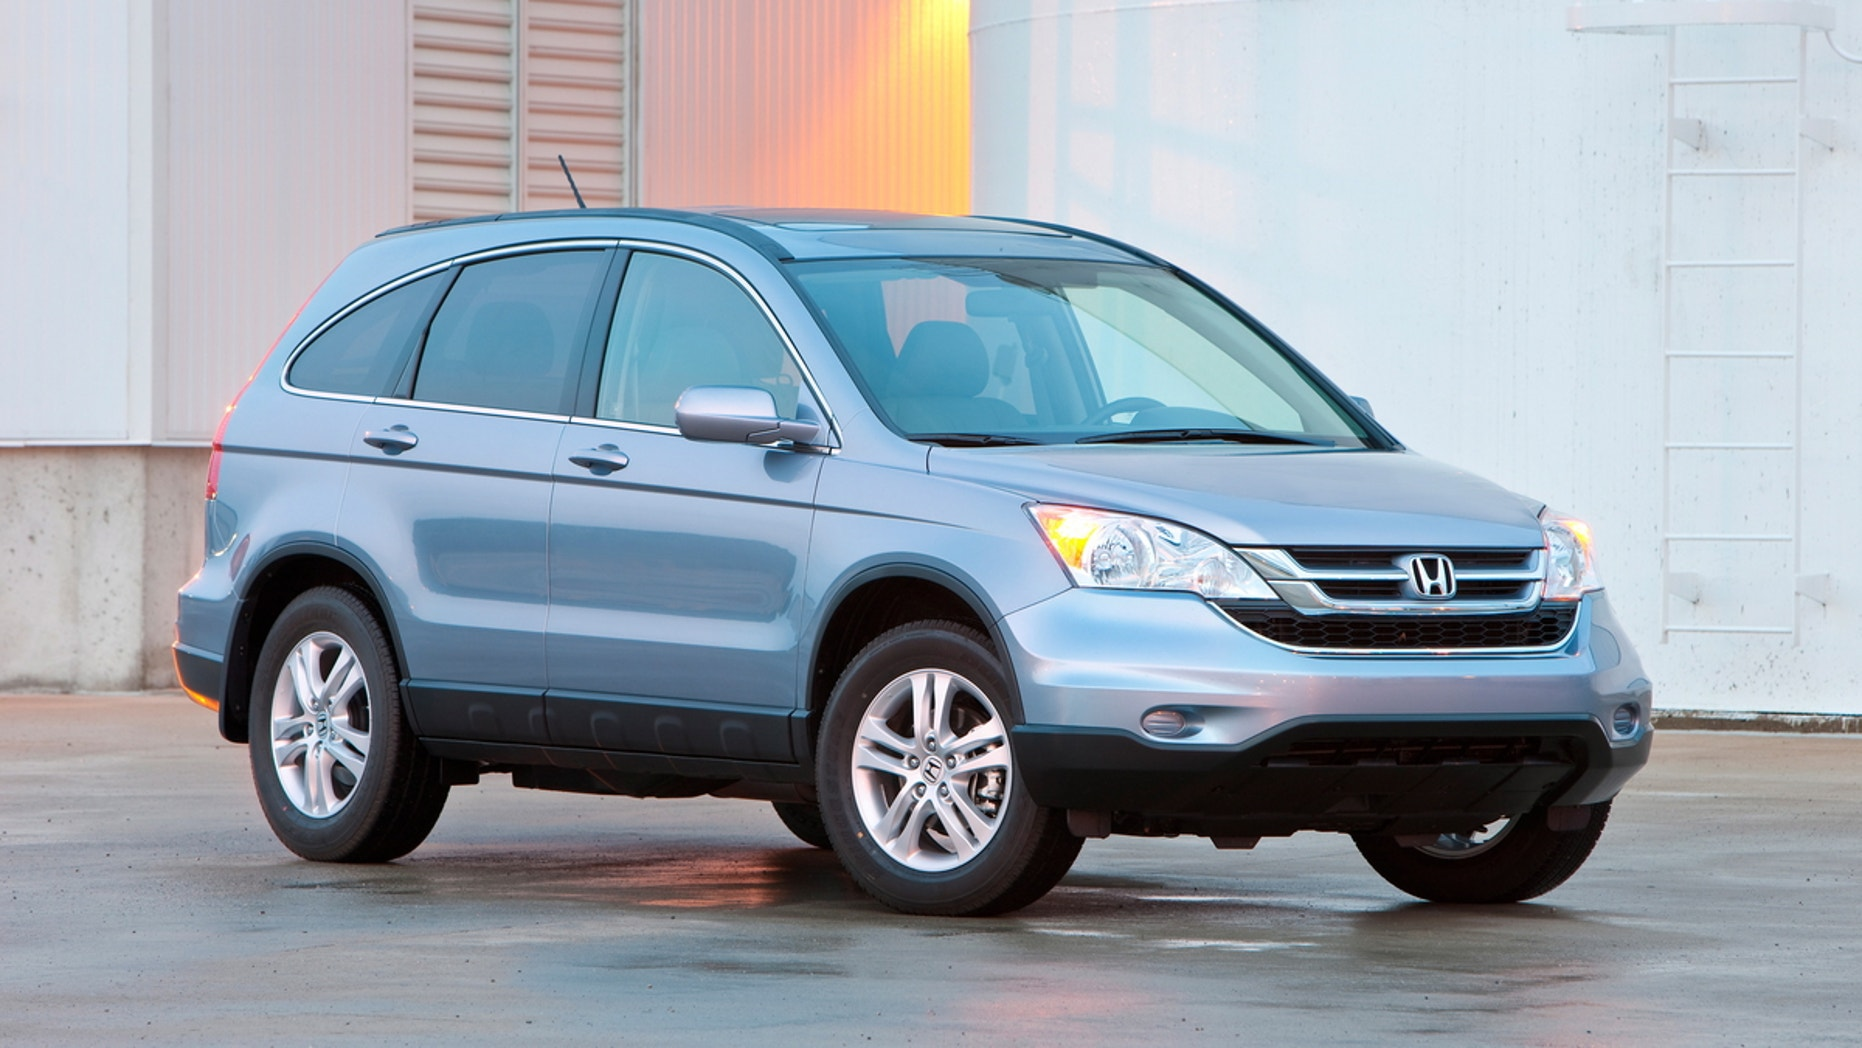 Honda Recalling Over 1 Million Vehicles With Dangerous Air Bags